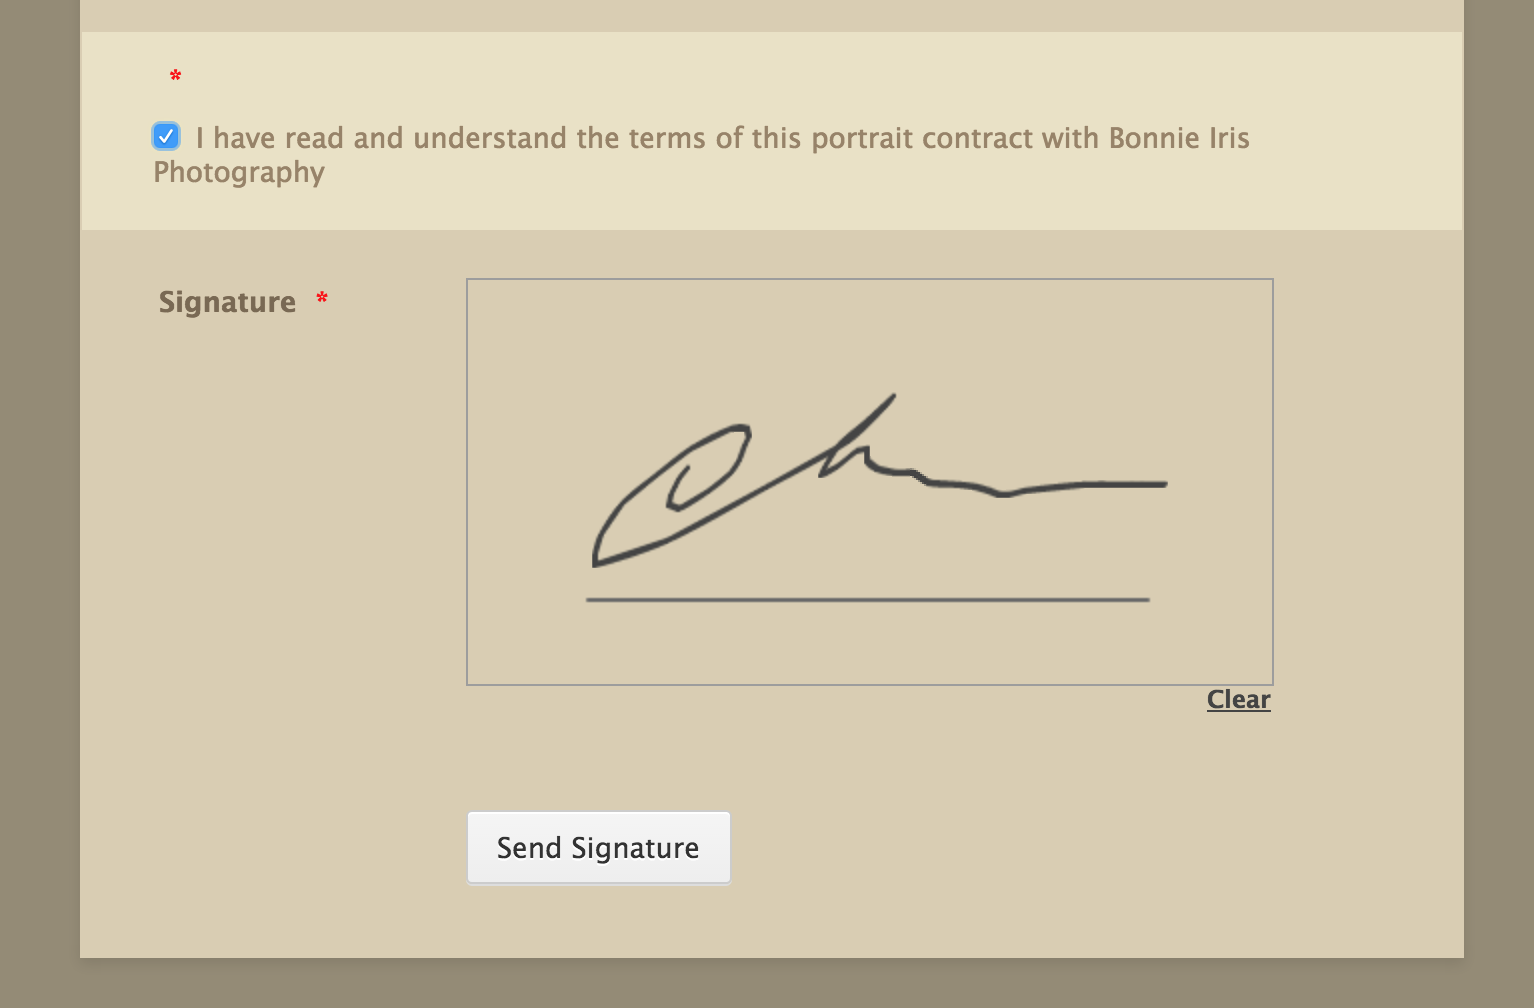 How to collect signatures via online forms